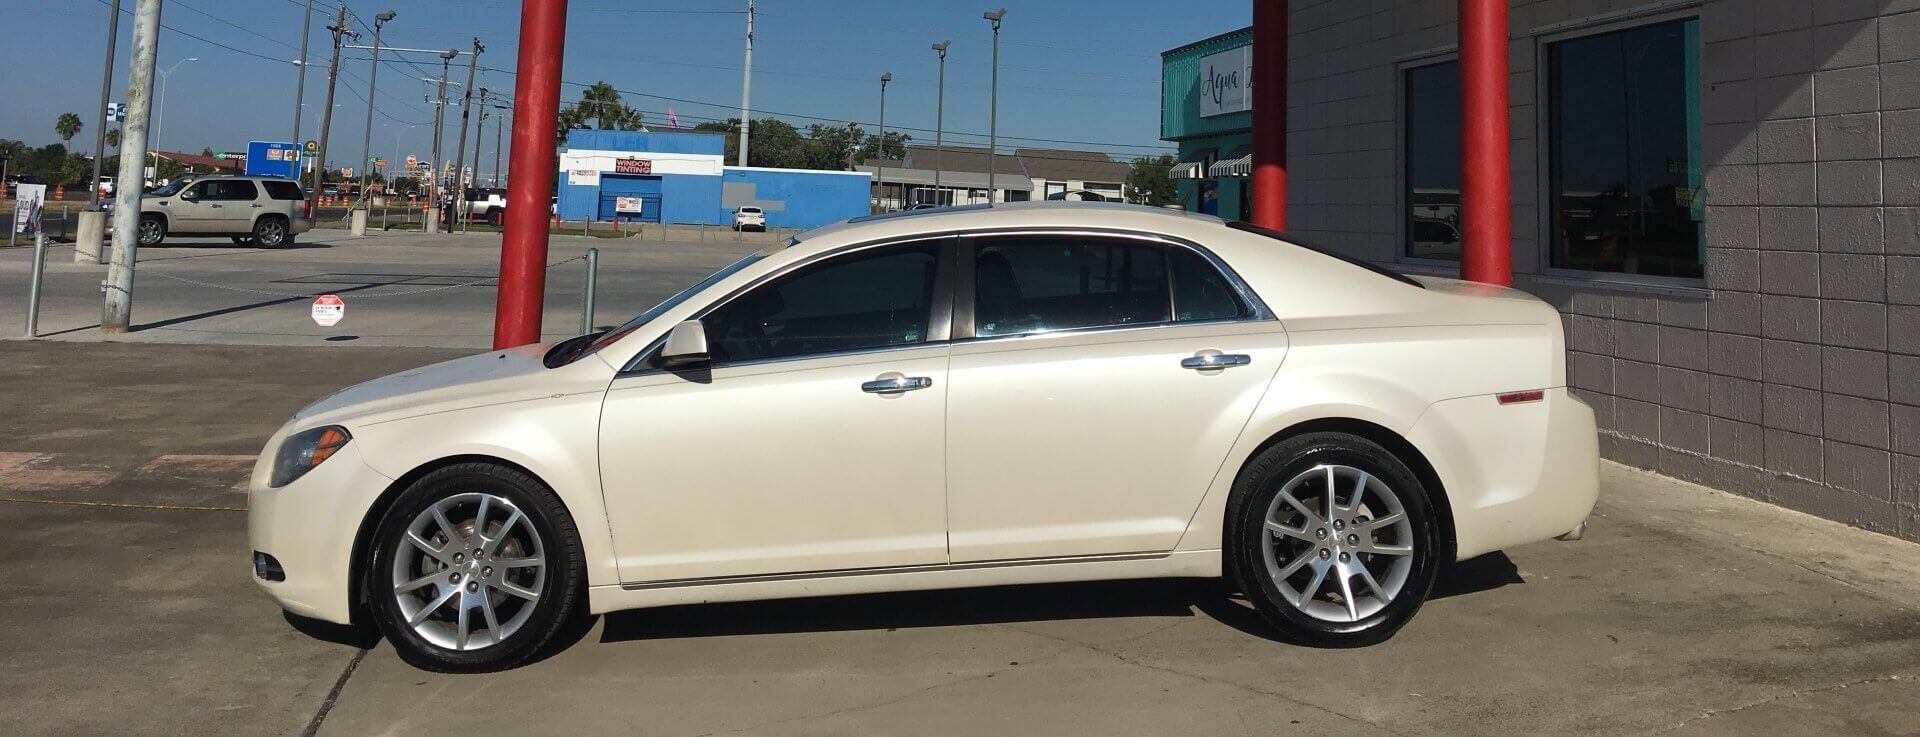 Used_Car_Dealership Buy_Here_Pay_Here_Cars Corpus